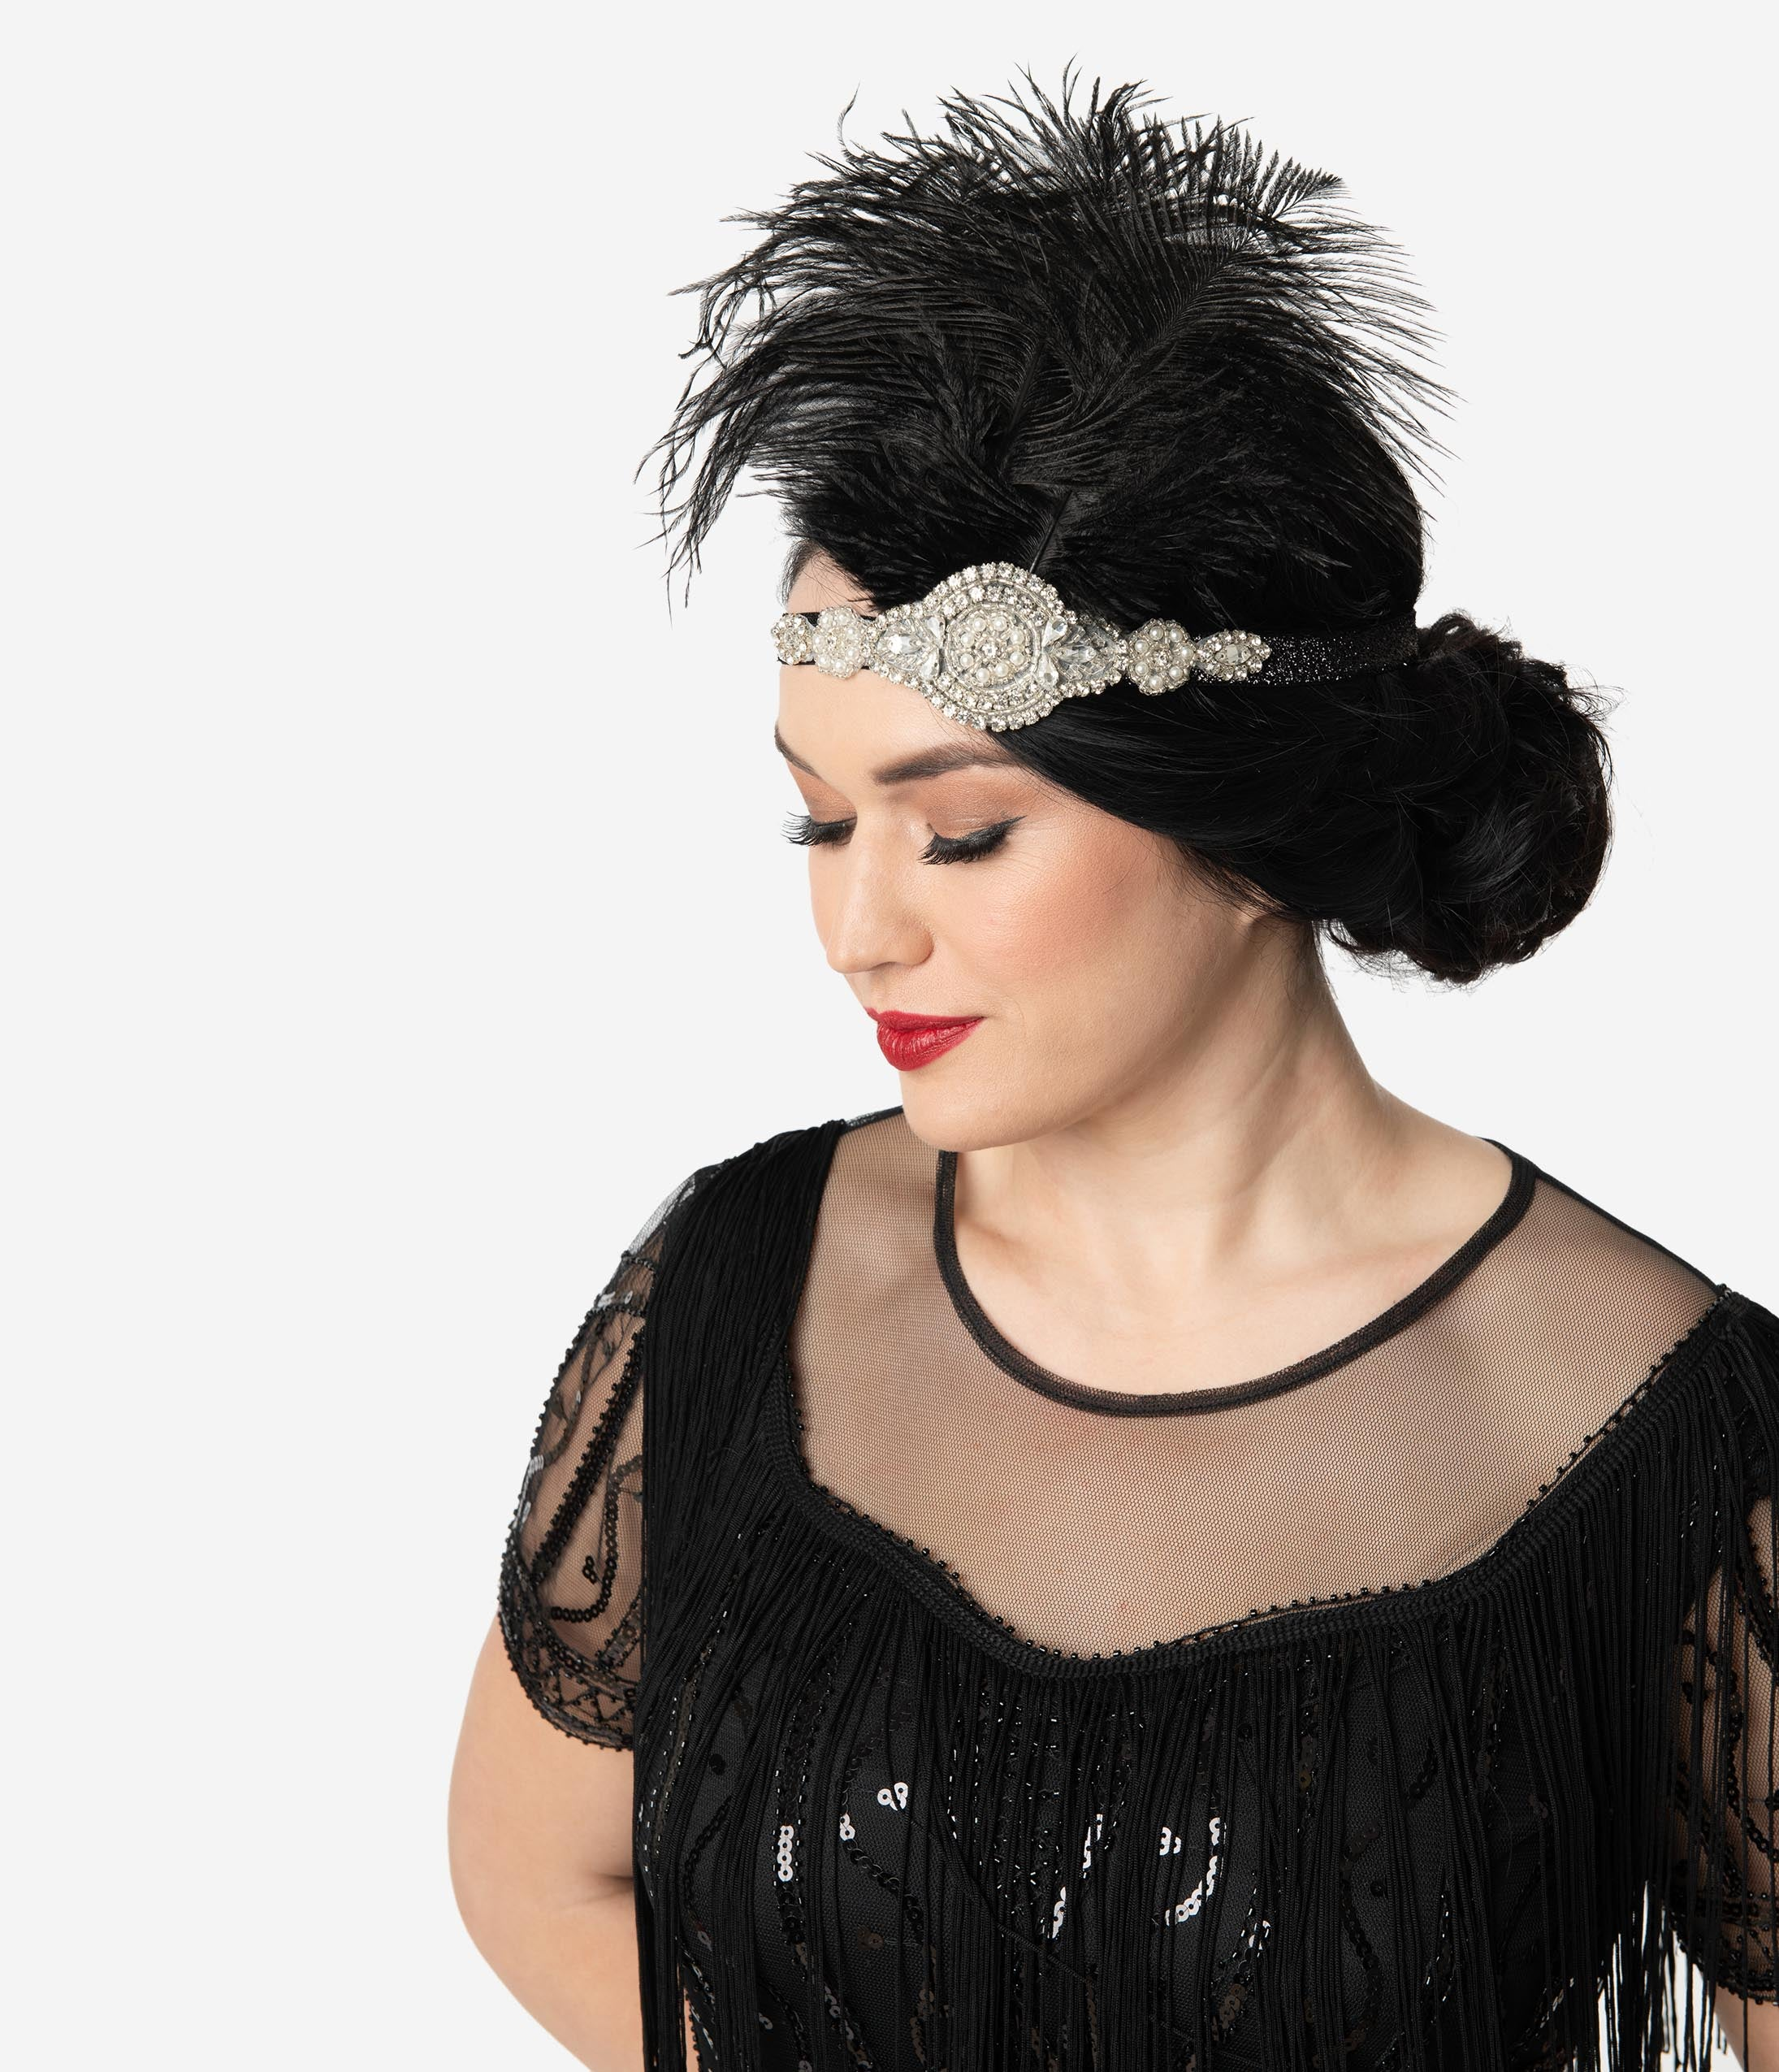 1920s Headband, Headpiece & Hair Accessory Styles Unique Vintage Black Feathers  Silver Crystal Beaded Flapper Headband $32.00 AT vintagedancer.com